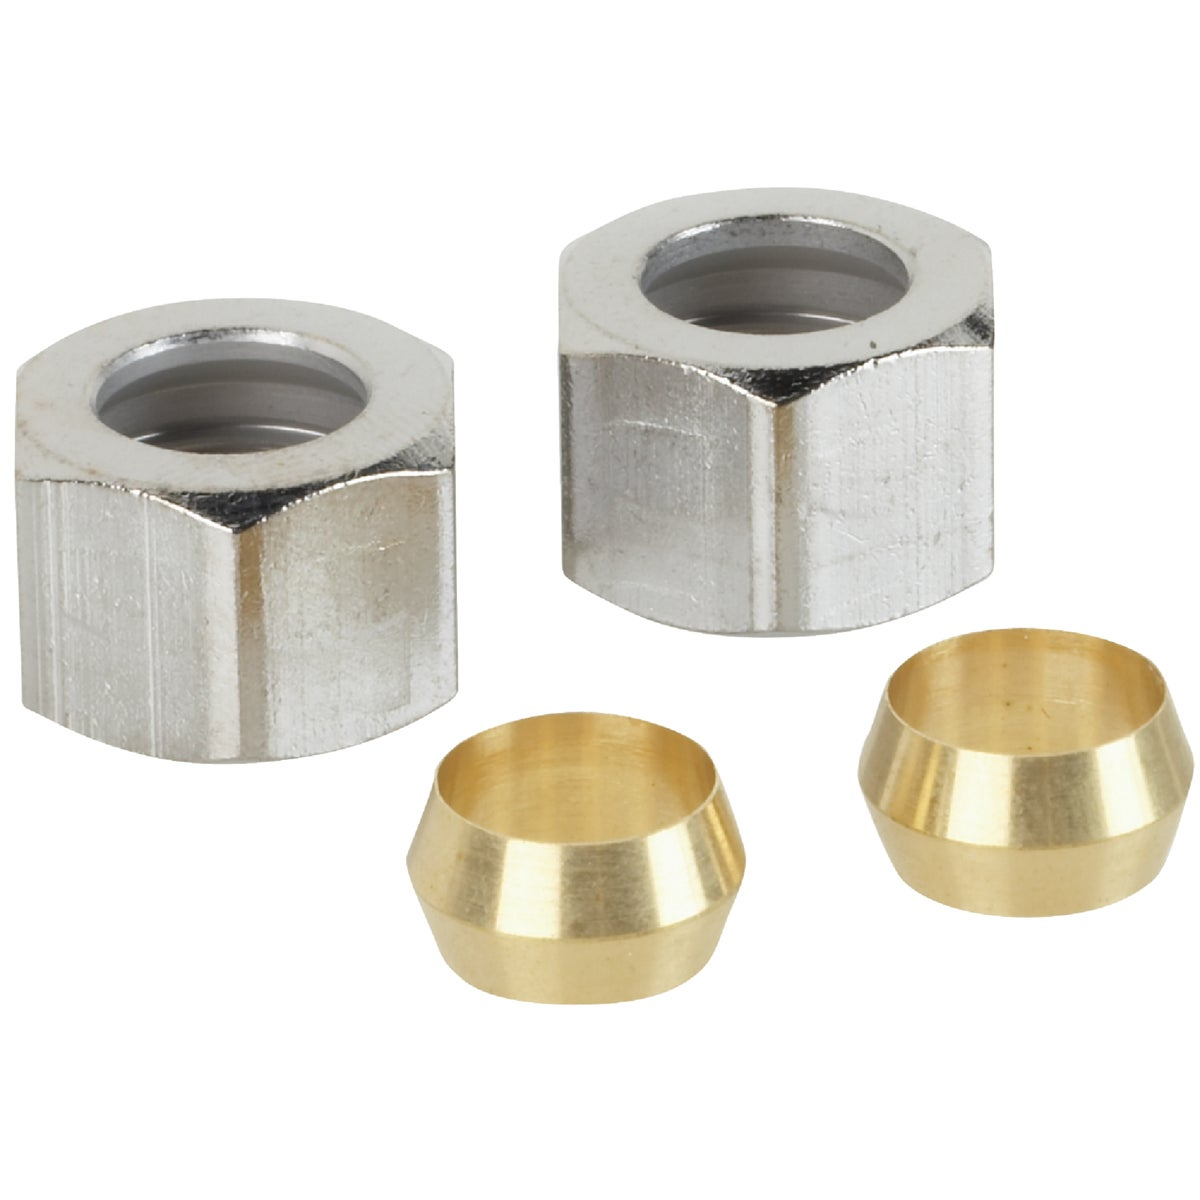 """3/8"""" COMP NUT & RING - 425640 by Do it Best"""